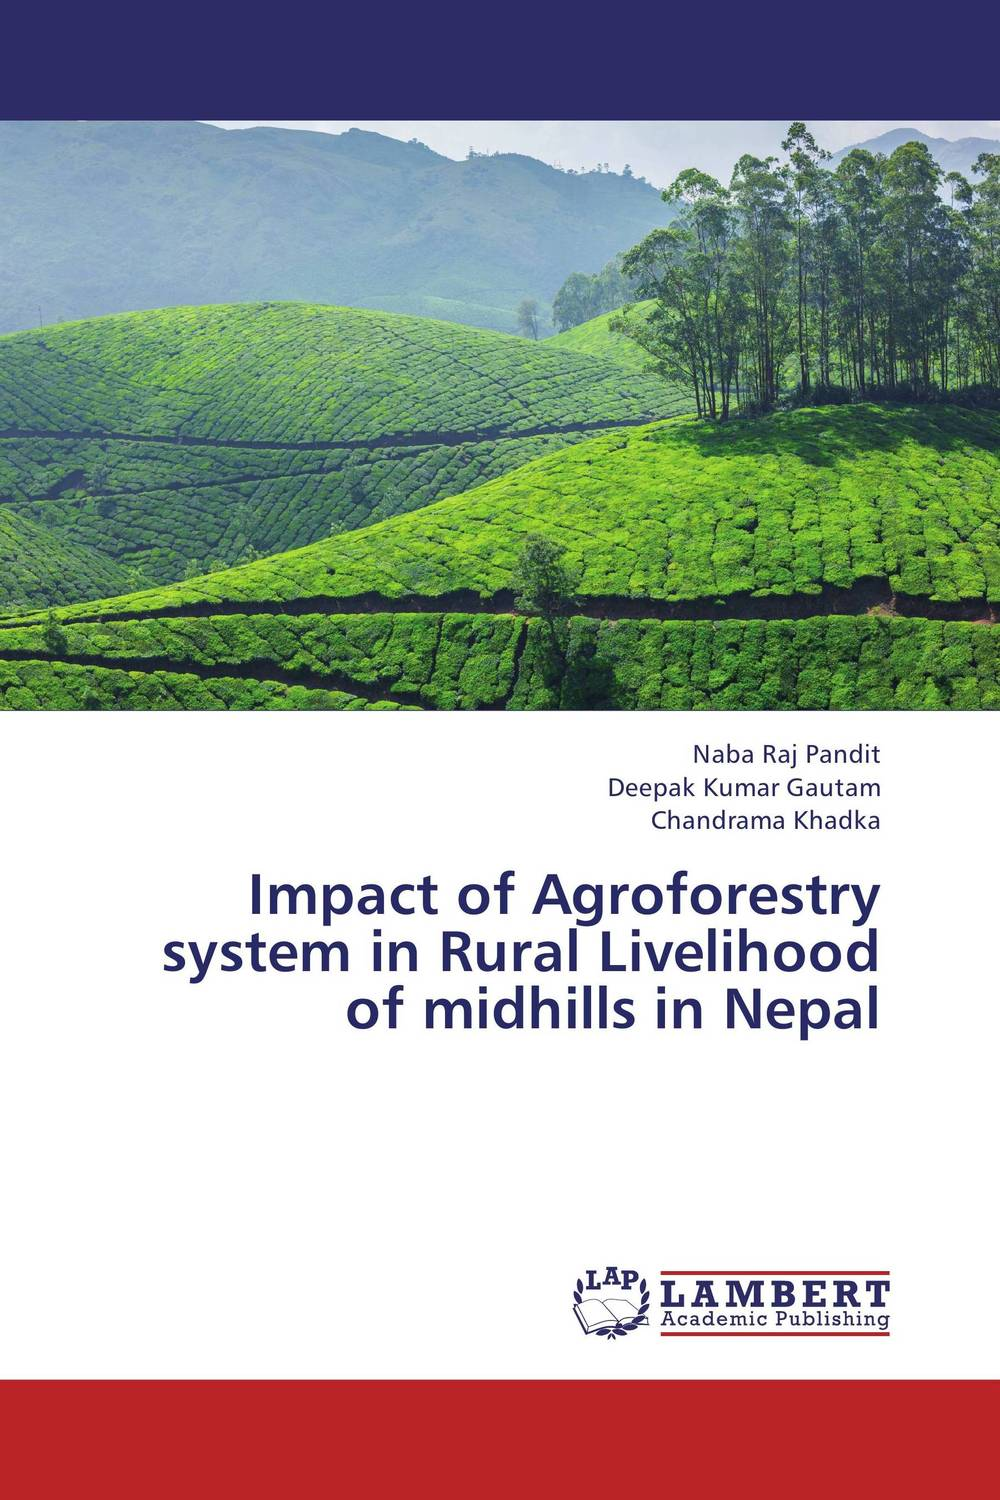 Impact of Agroforestry system in Rural Livelihood of midhills in Nepal reuben okereke socio economic impact of a university campus development project